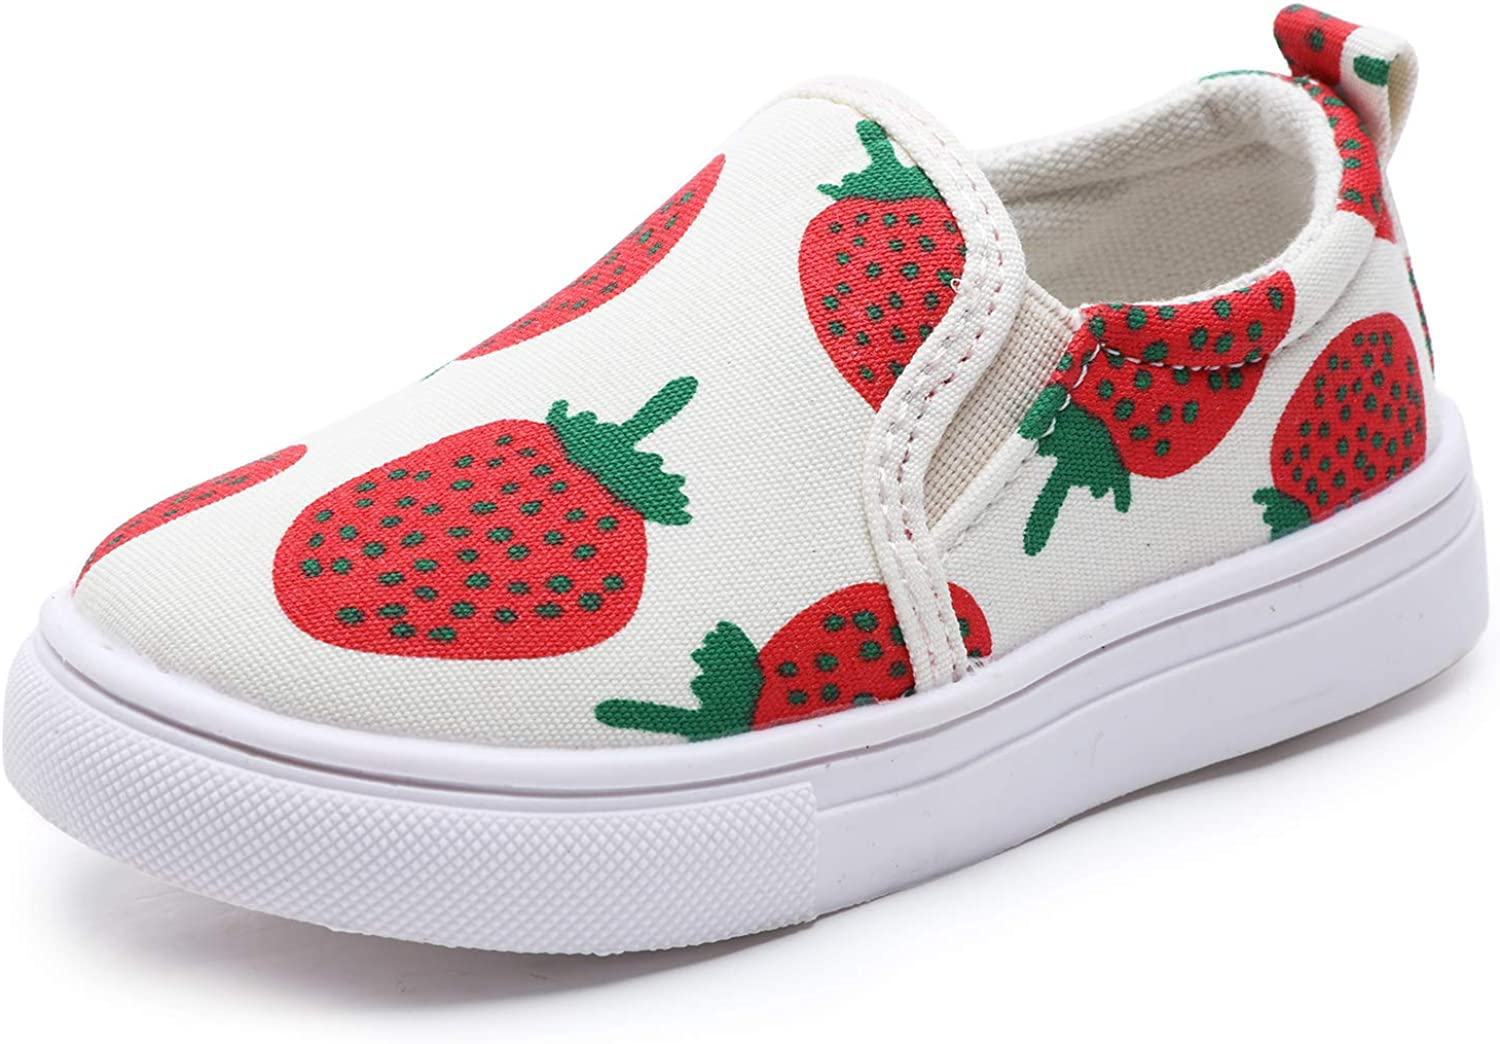 Minibella Toddler Strawberry Print Canvas Sneakers Baby Girls Casual Slip-on Loafer Shoes Flats